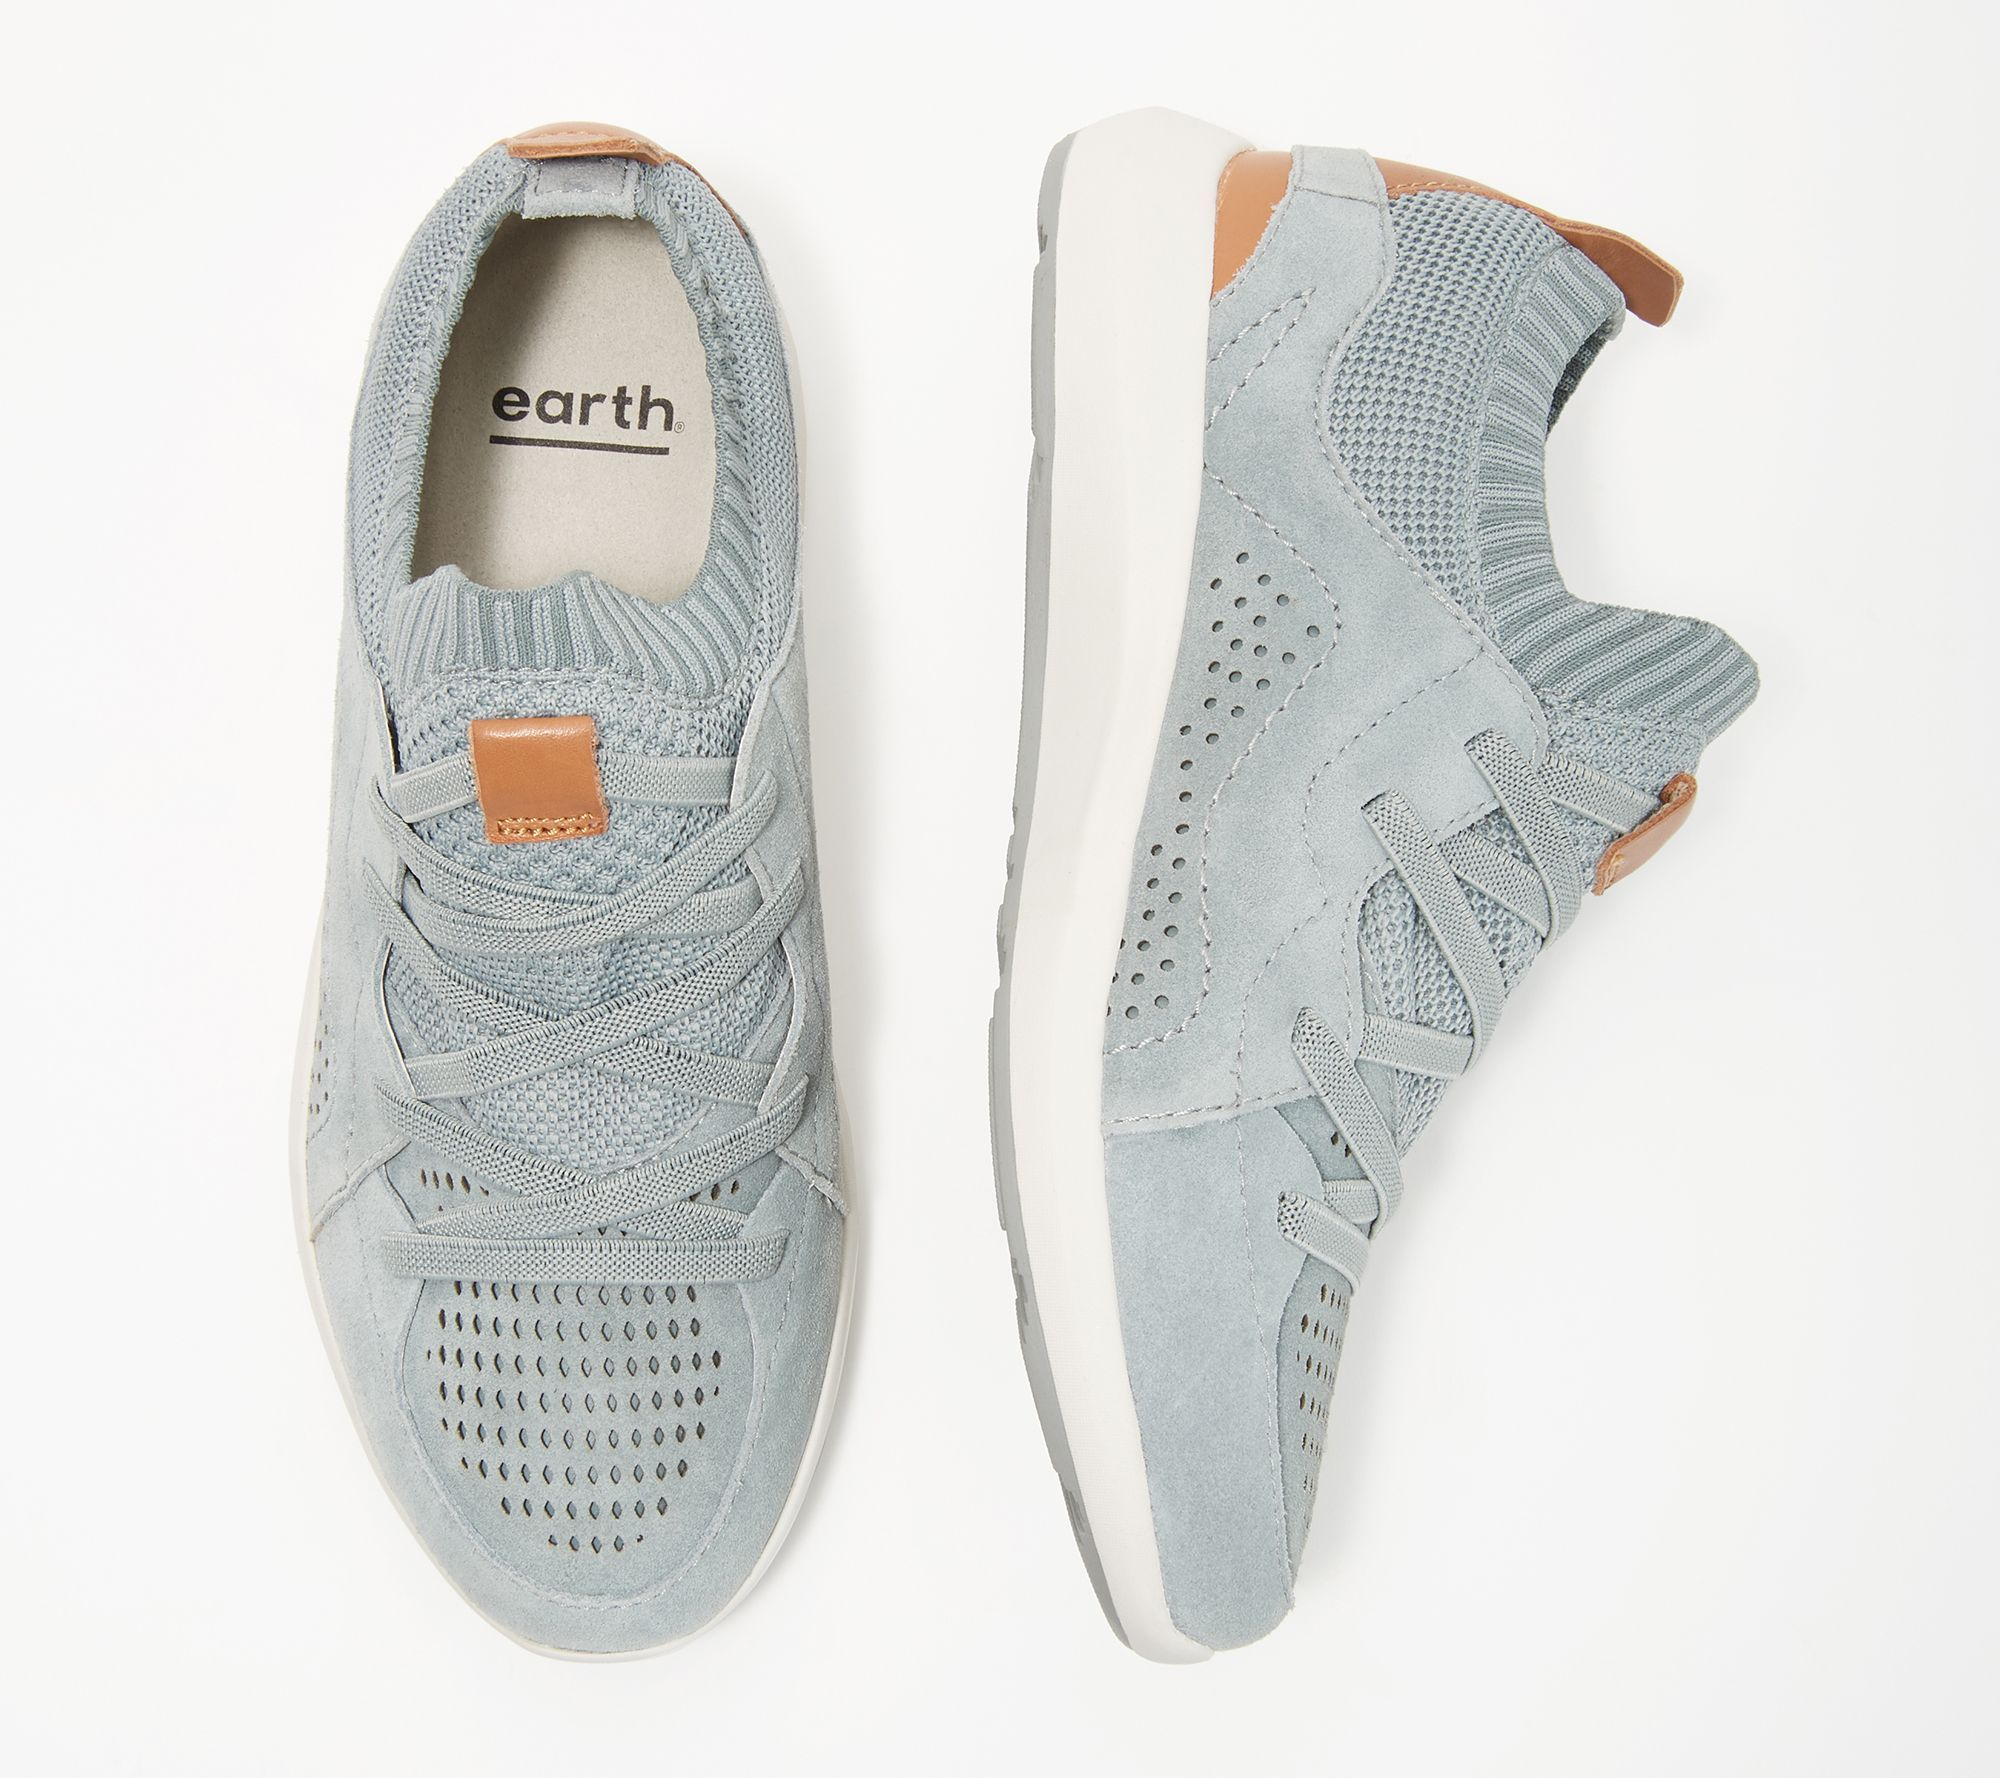 Earth Knit Lace-Up Sneakers - Desire